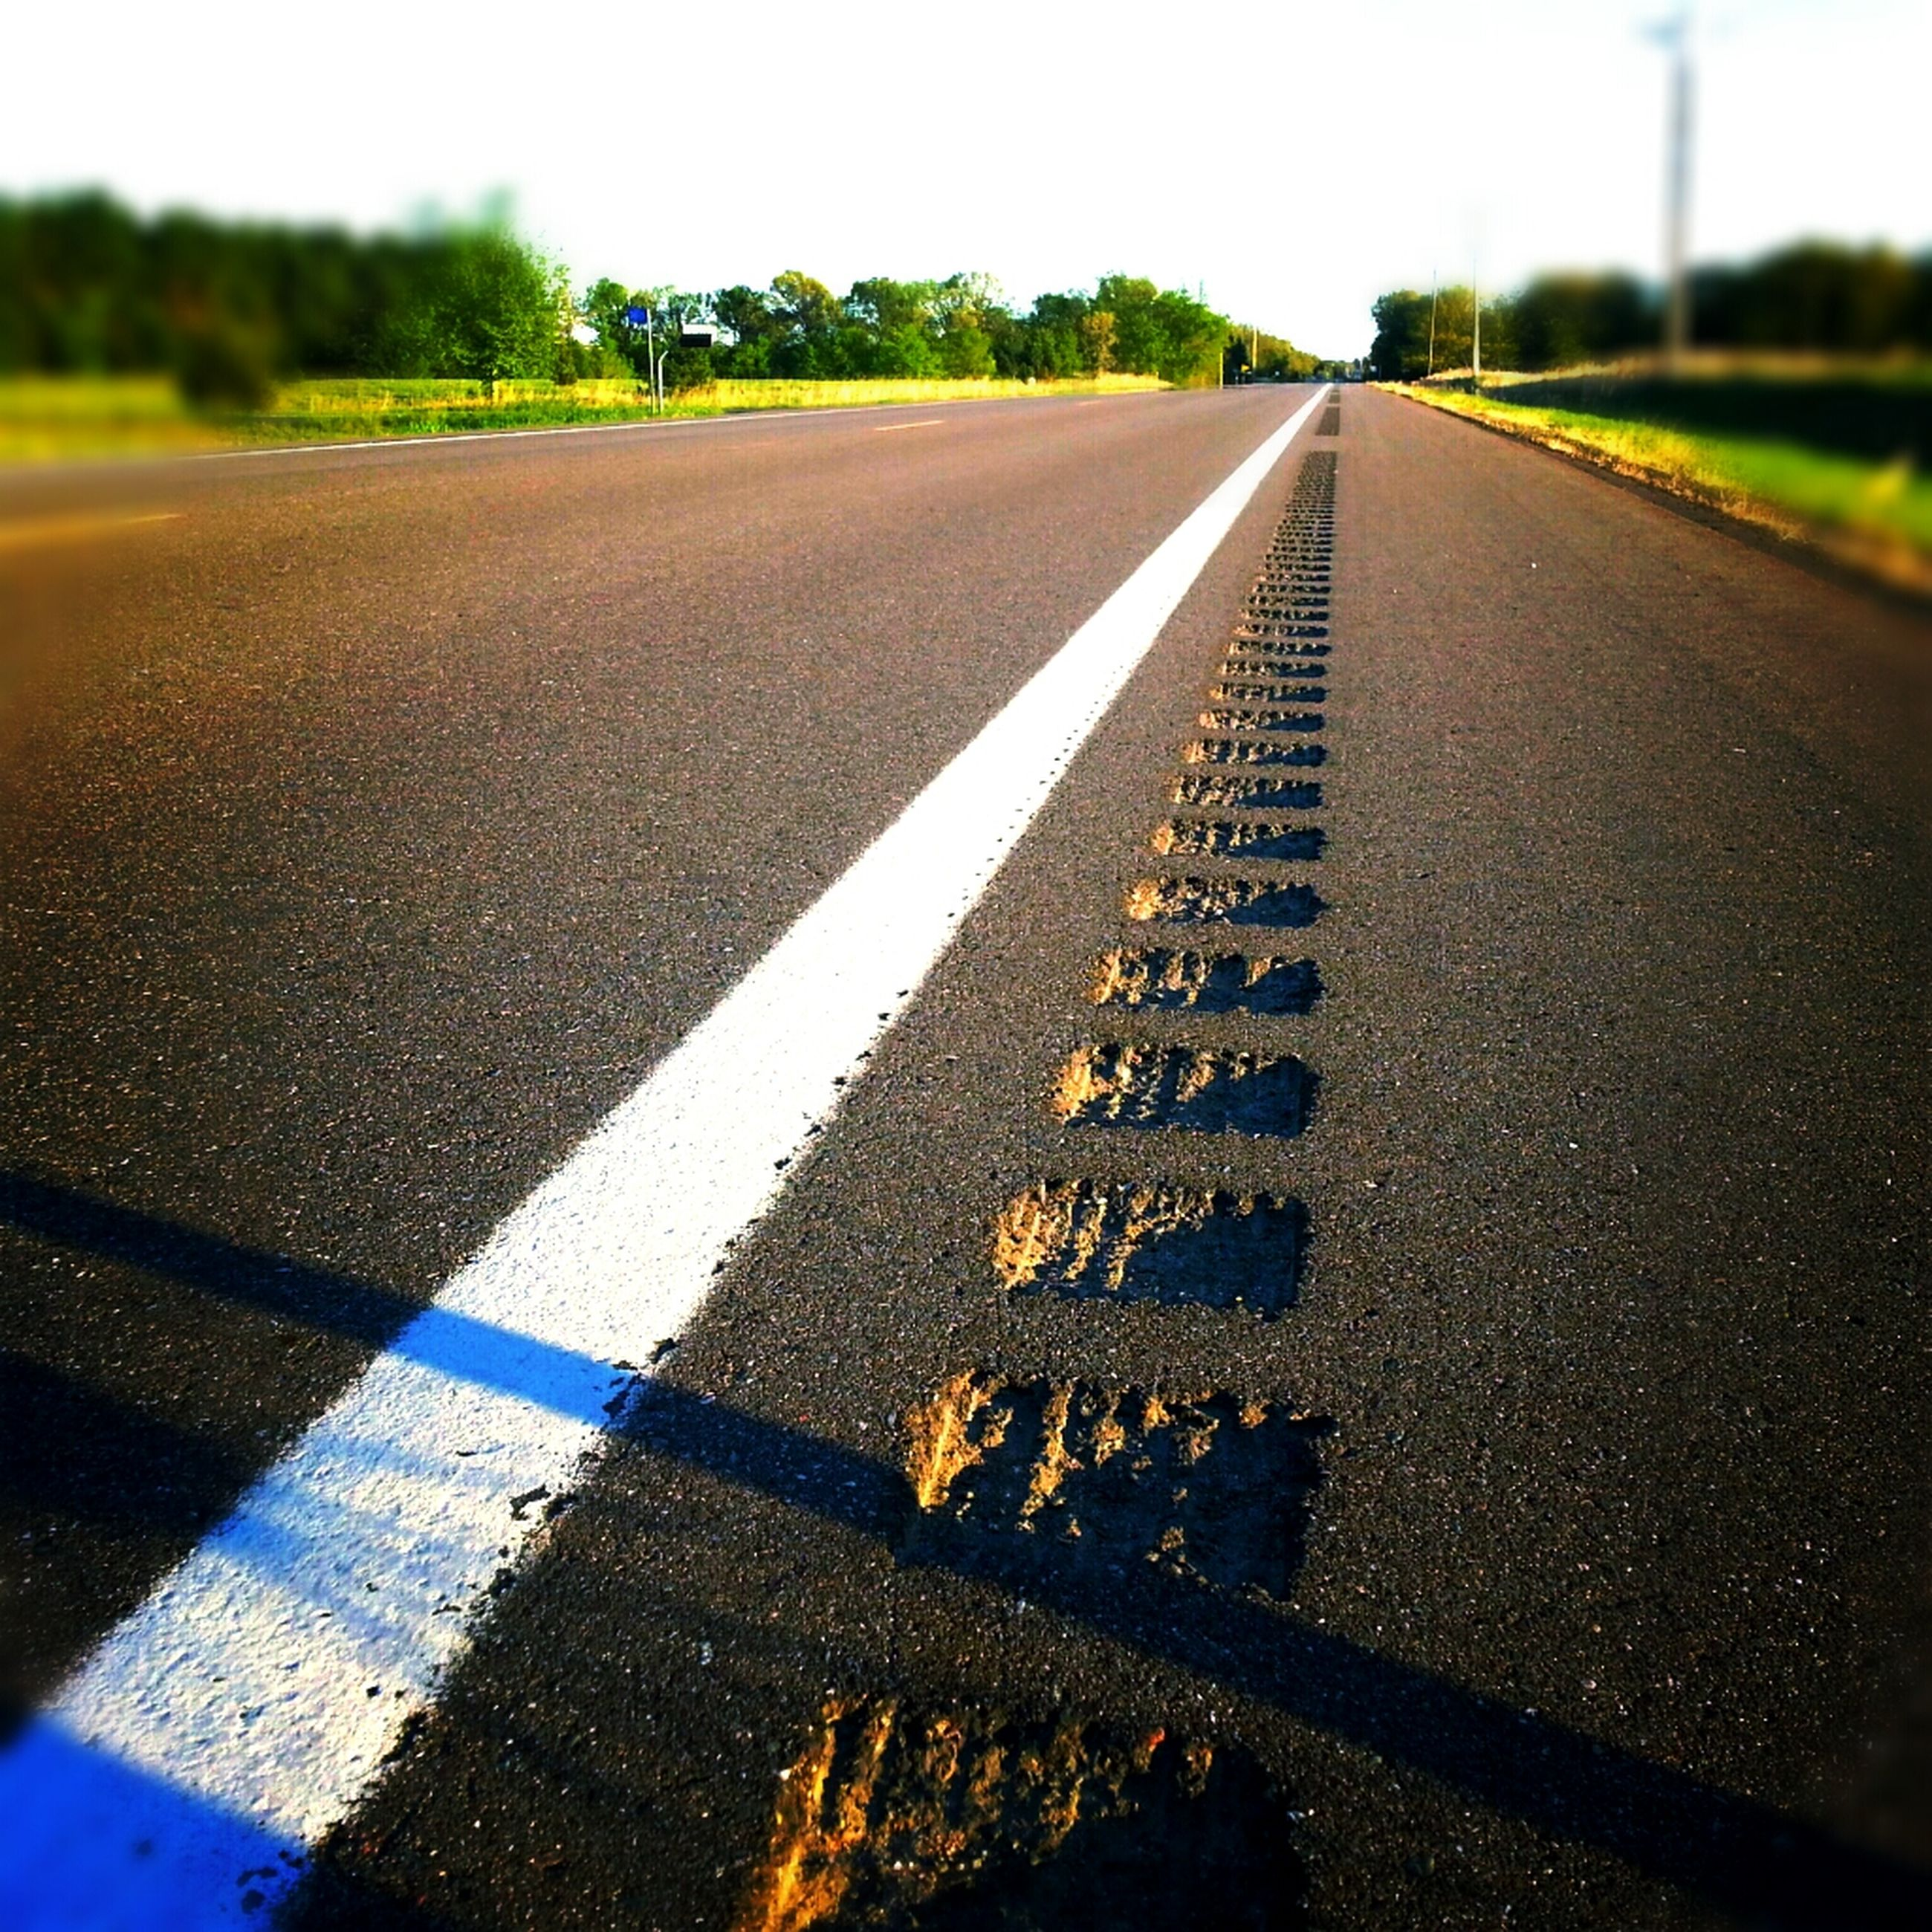 road marking, the way forward, transportation, asphalt, diminishing perspective, road, vanishing point, surface level, street, empty, empty road, day, no people, outdoors, dividing line, close-up, direction, long, sunlight, sky